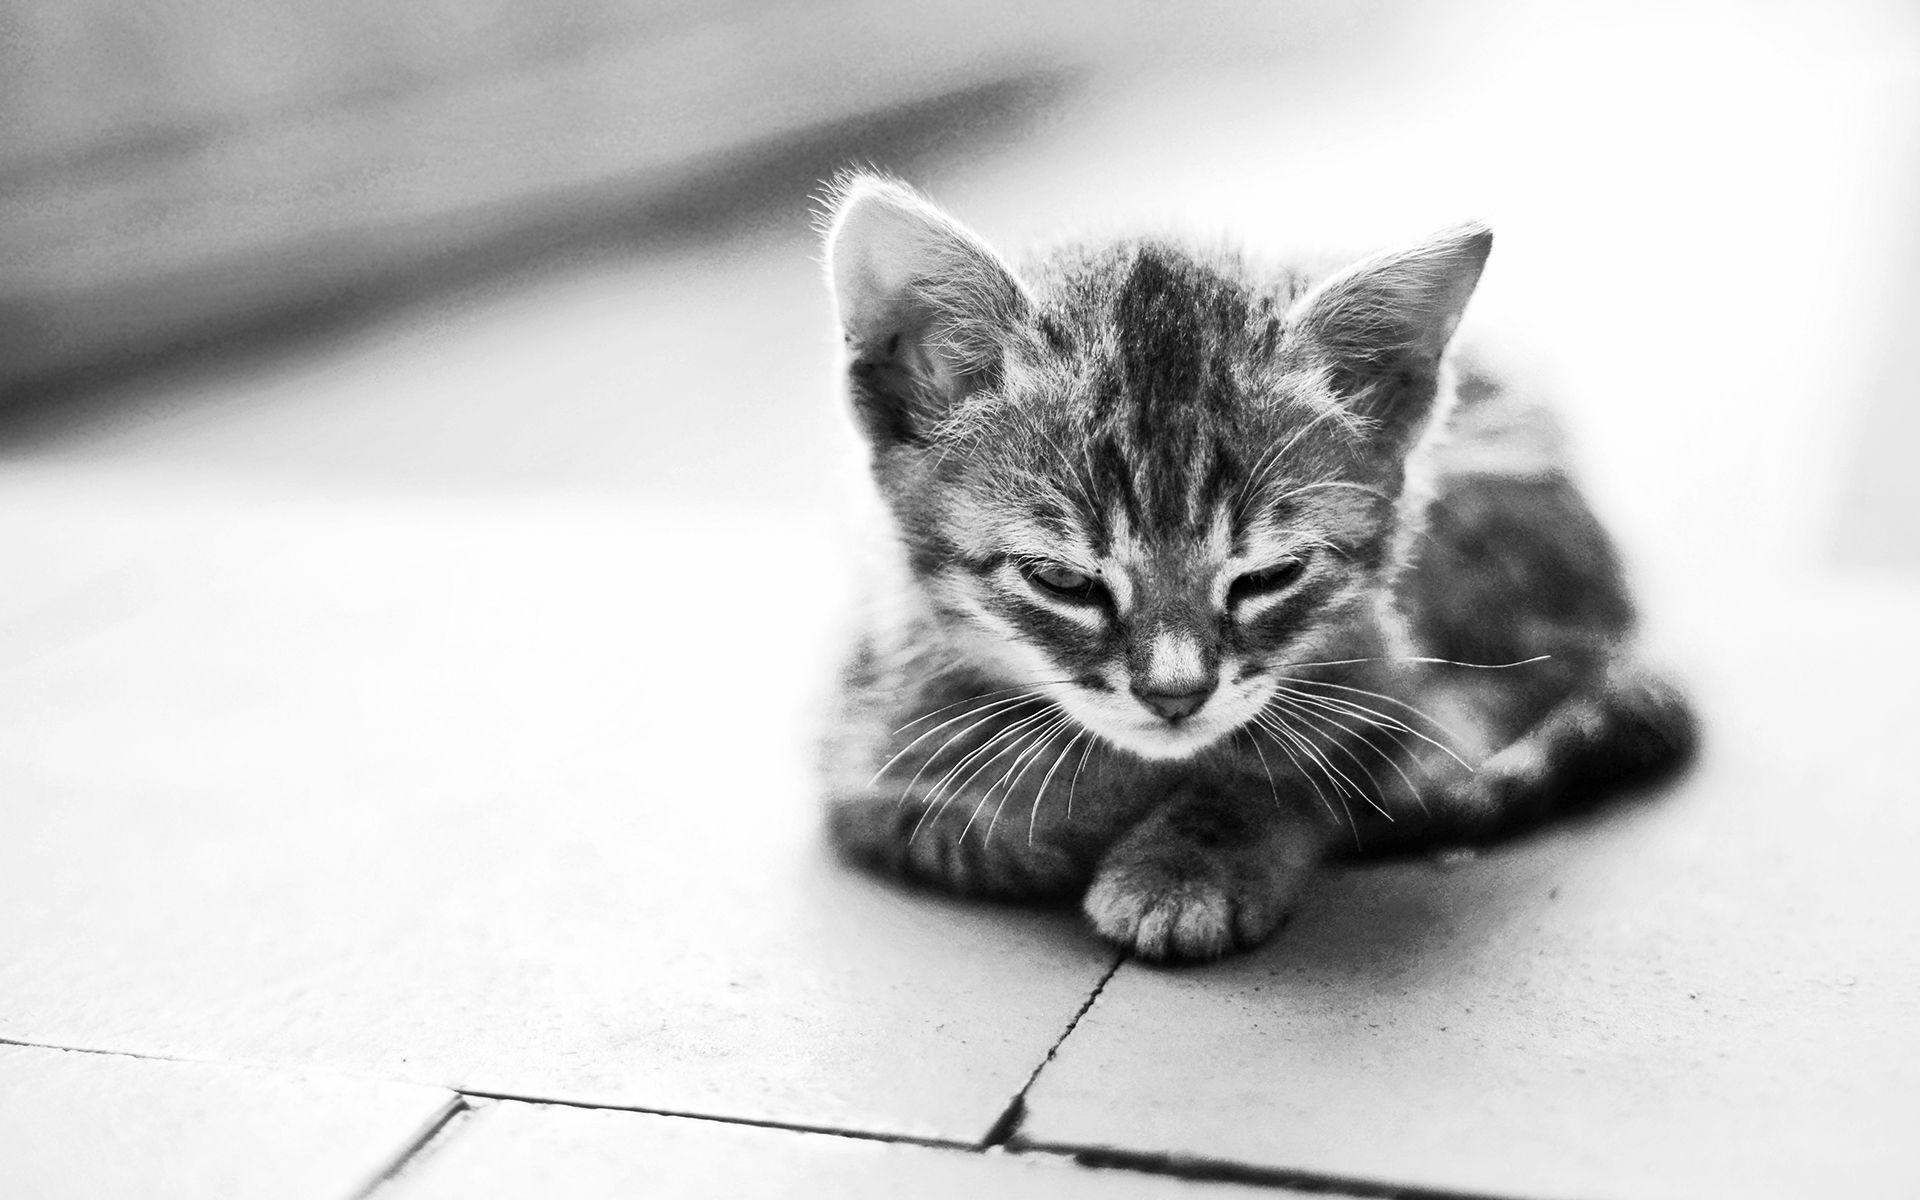 Cute kitty monochrome